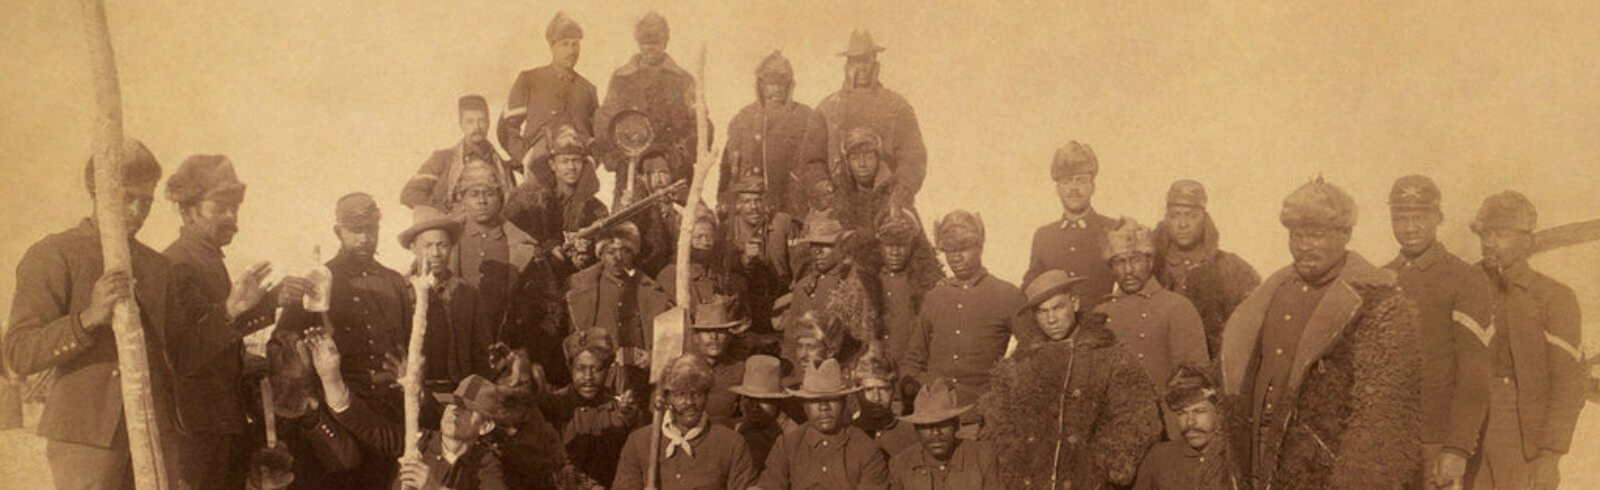 Buffalo Soldiers